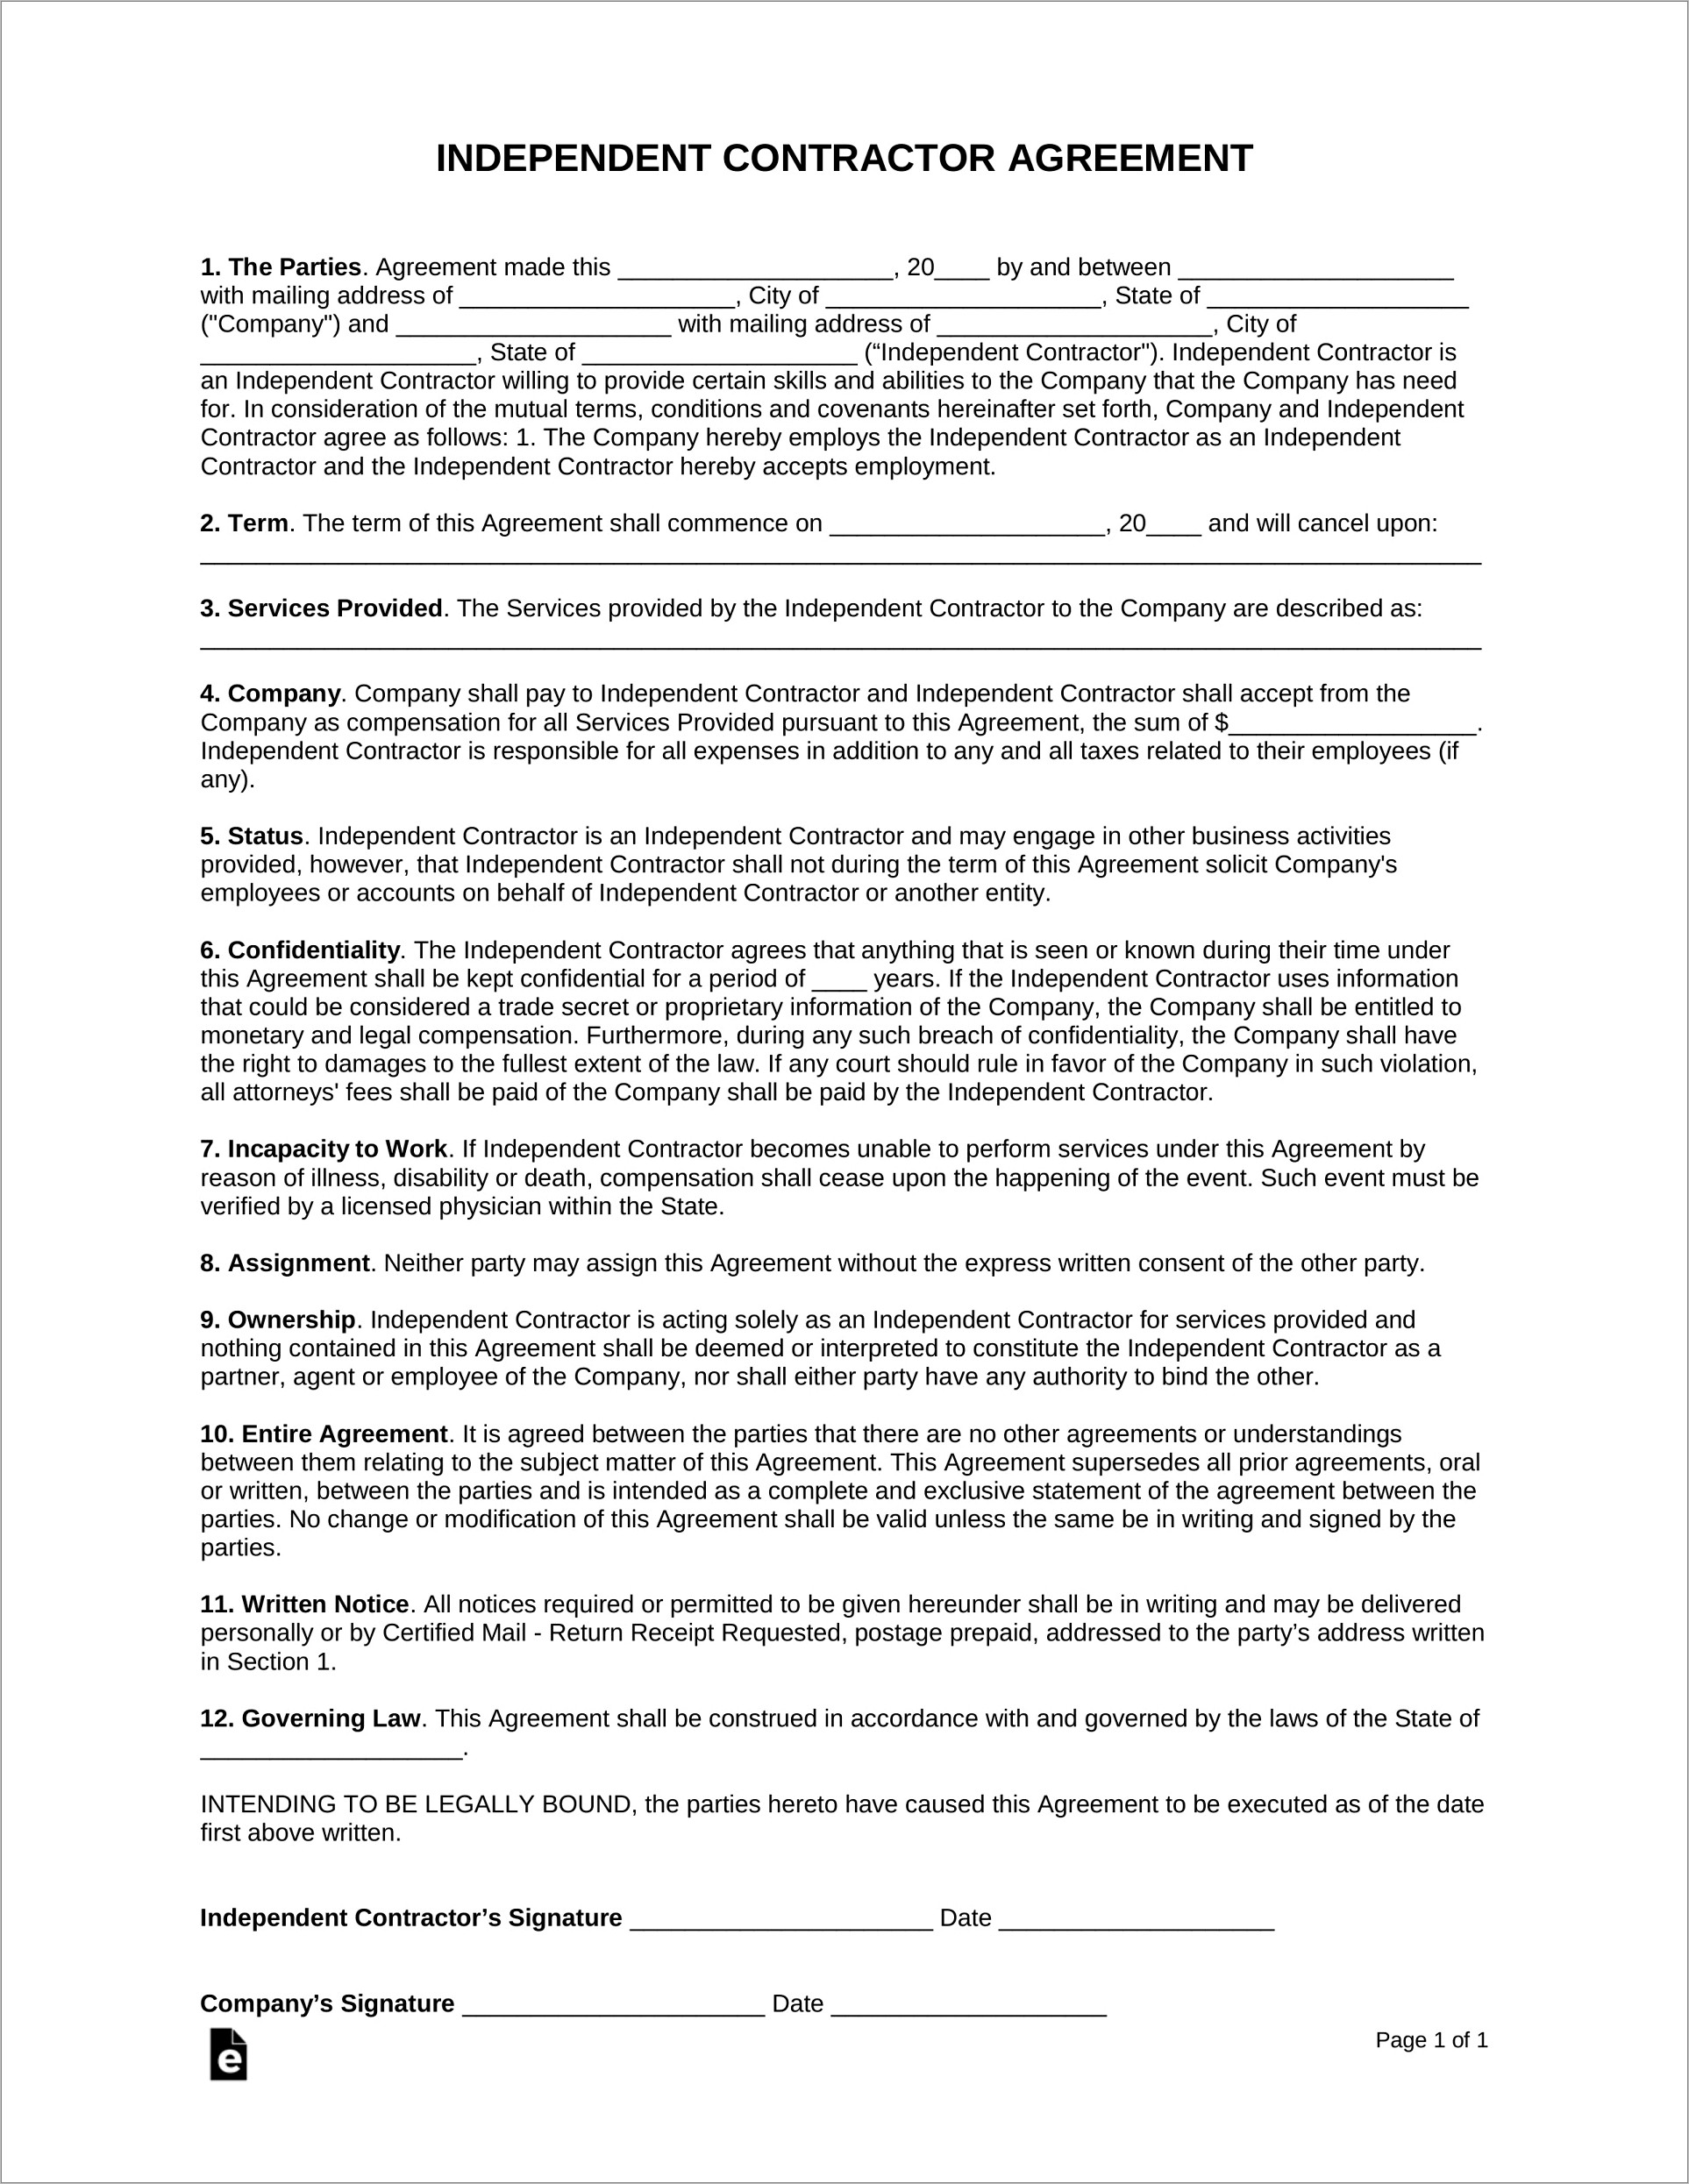 Independent Contractor Agreement Sample Canada